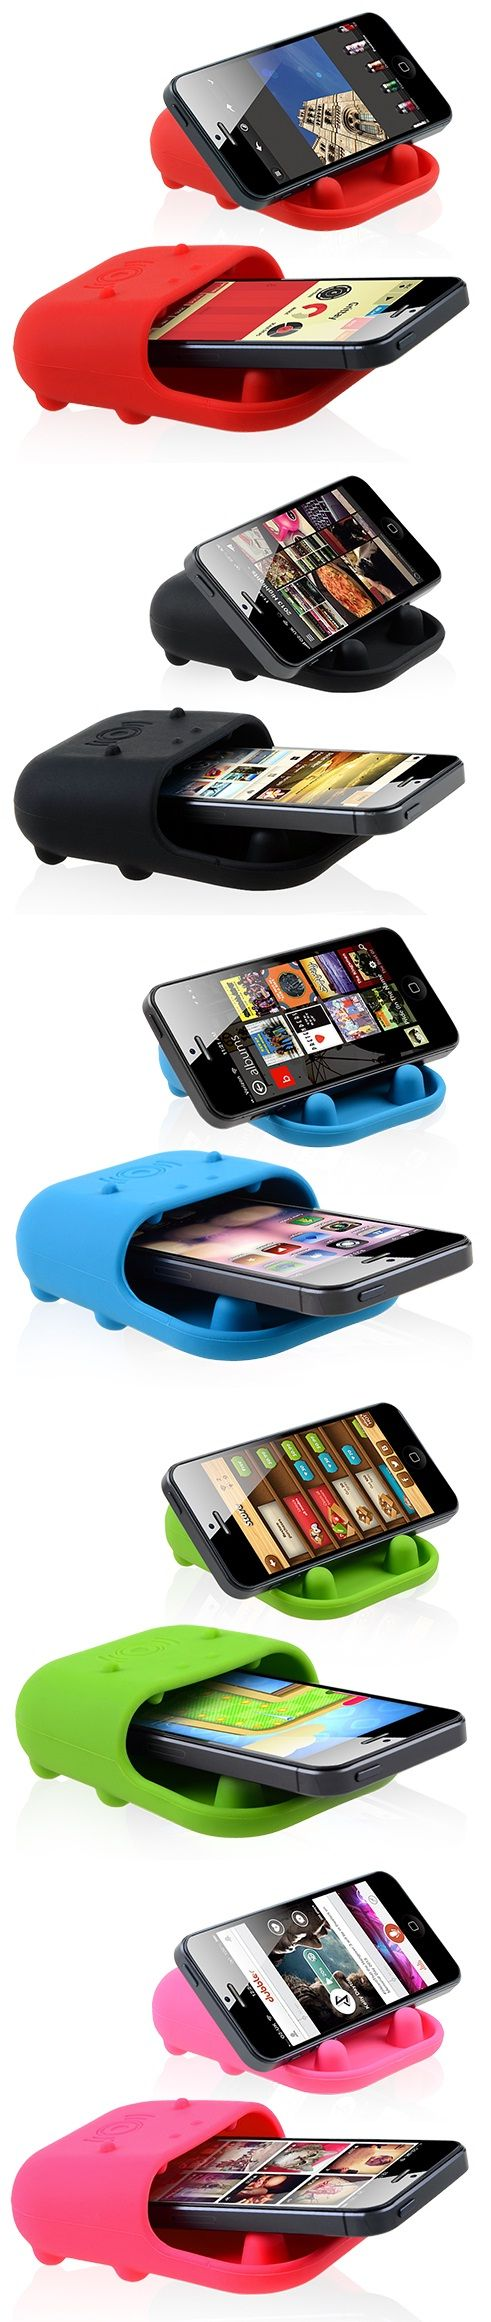 Multi-Functional Acoustic Silicone Speaker for Smartphones #speaker #acoustic #silicone #smartphone #music #speakers $6.24